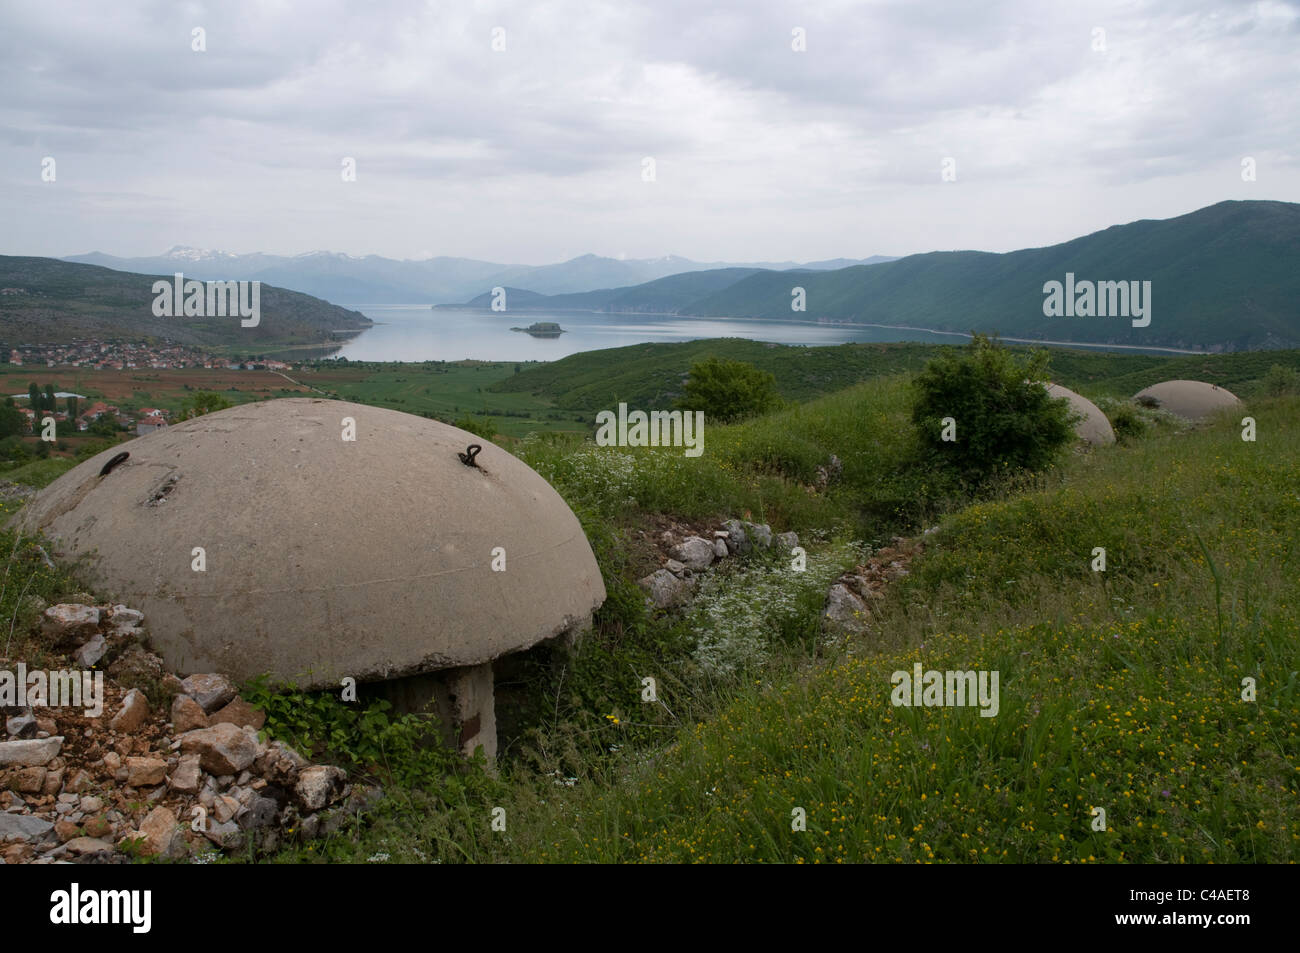 Some hundred thousends of military bunkers were constructed in Albania's socialistic era.  Bunker aus Albaniens - Stock Image